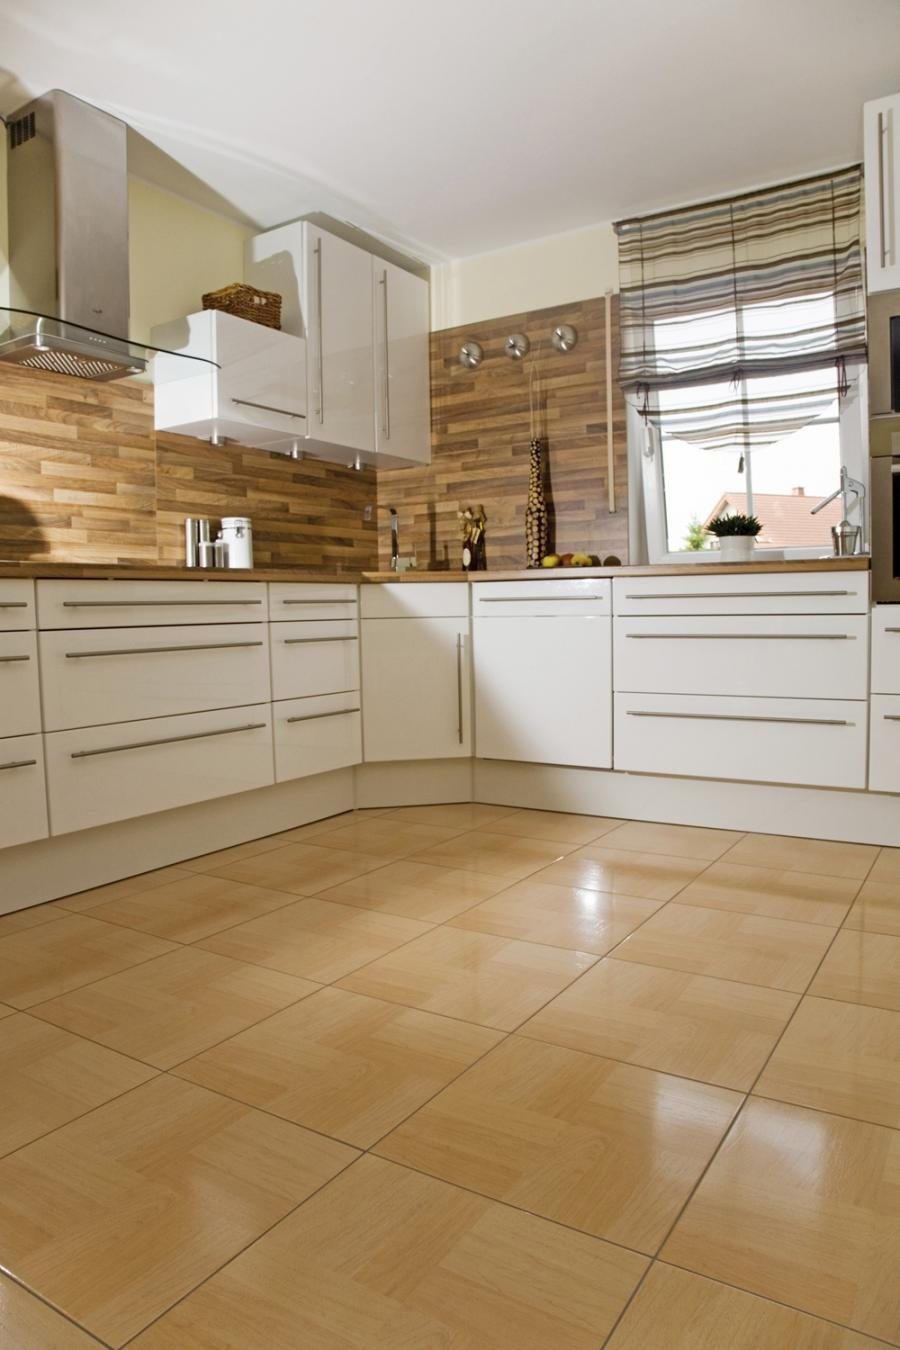 Kitchen ceramic tile floor photos for Ceramic tile flooring designs kitchen